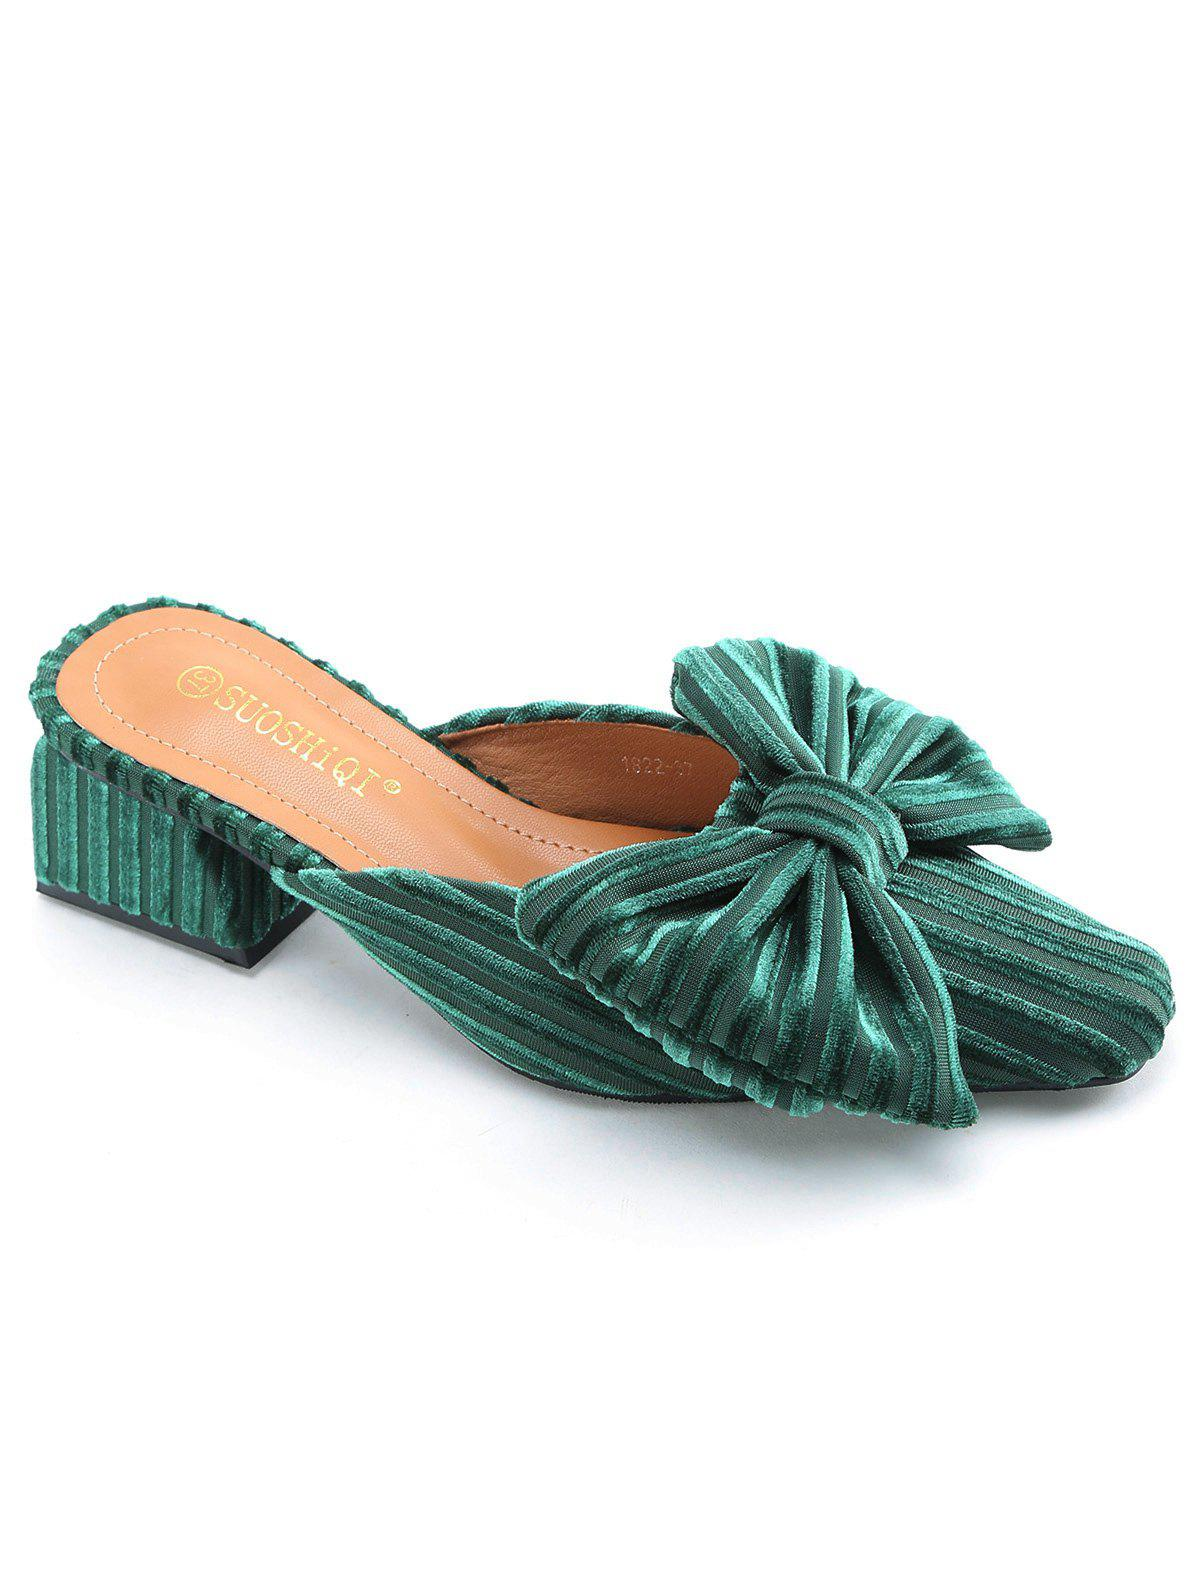 New Bowknot Block Heel Velvet Sandals